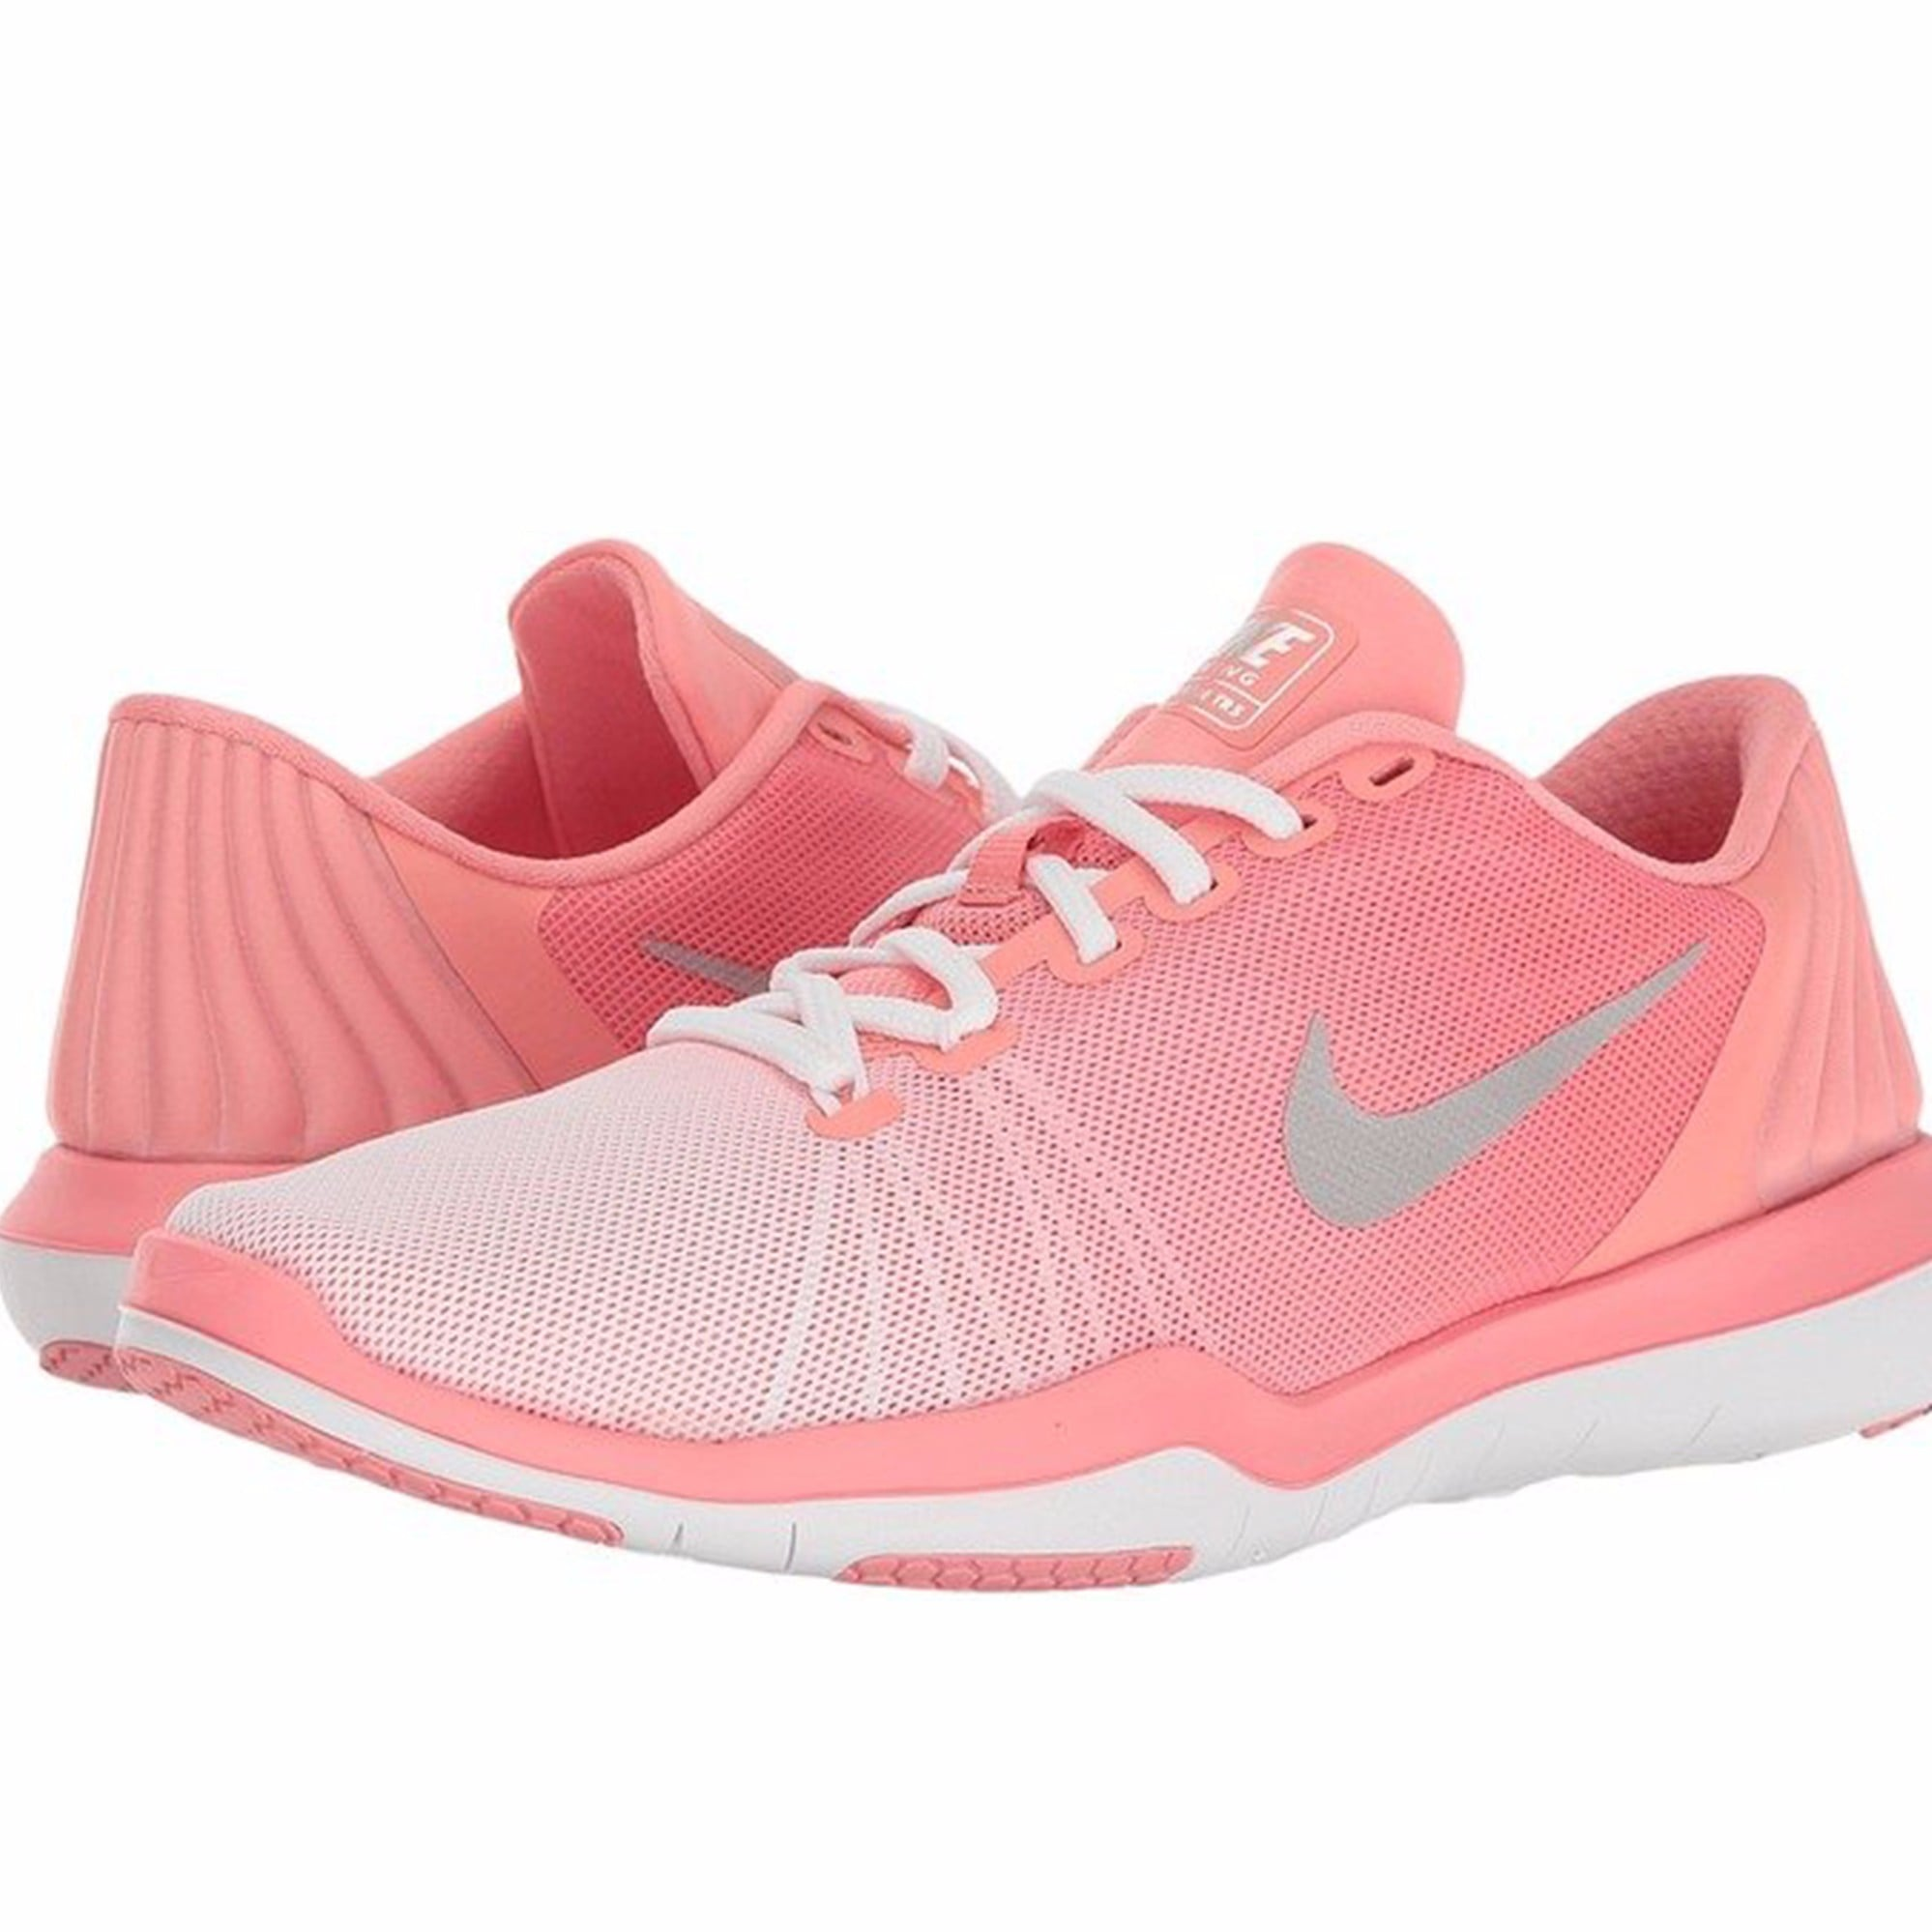 Best Sneakers For the Gym | POPSUGAR